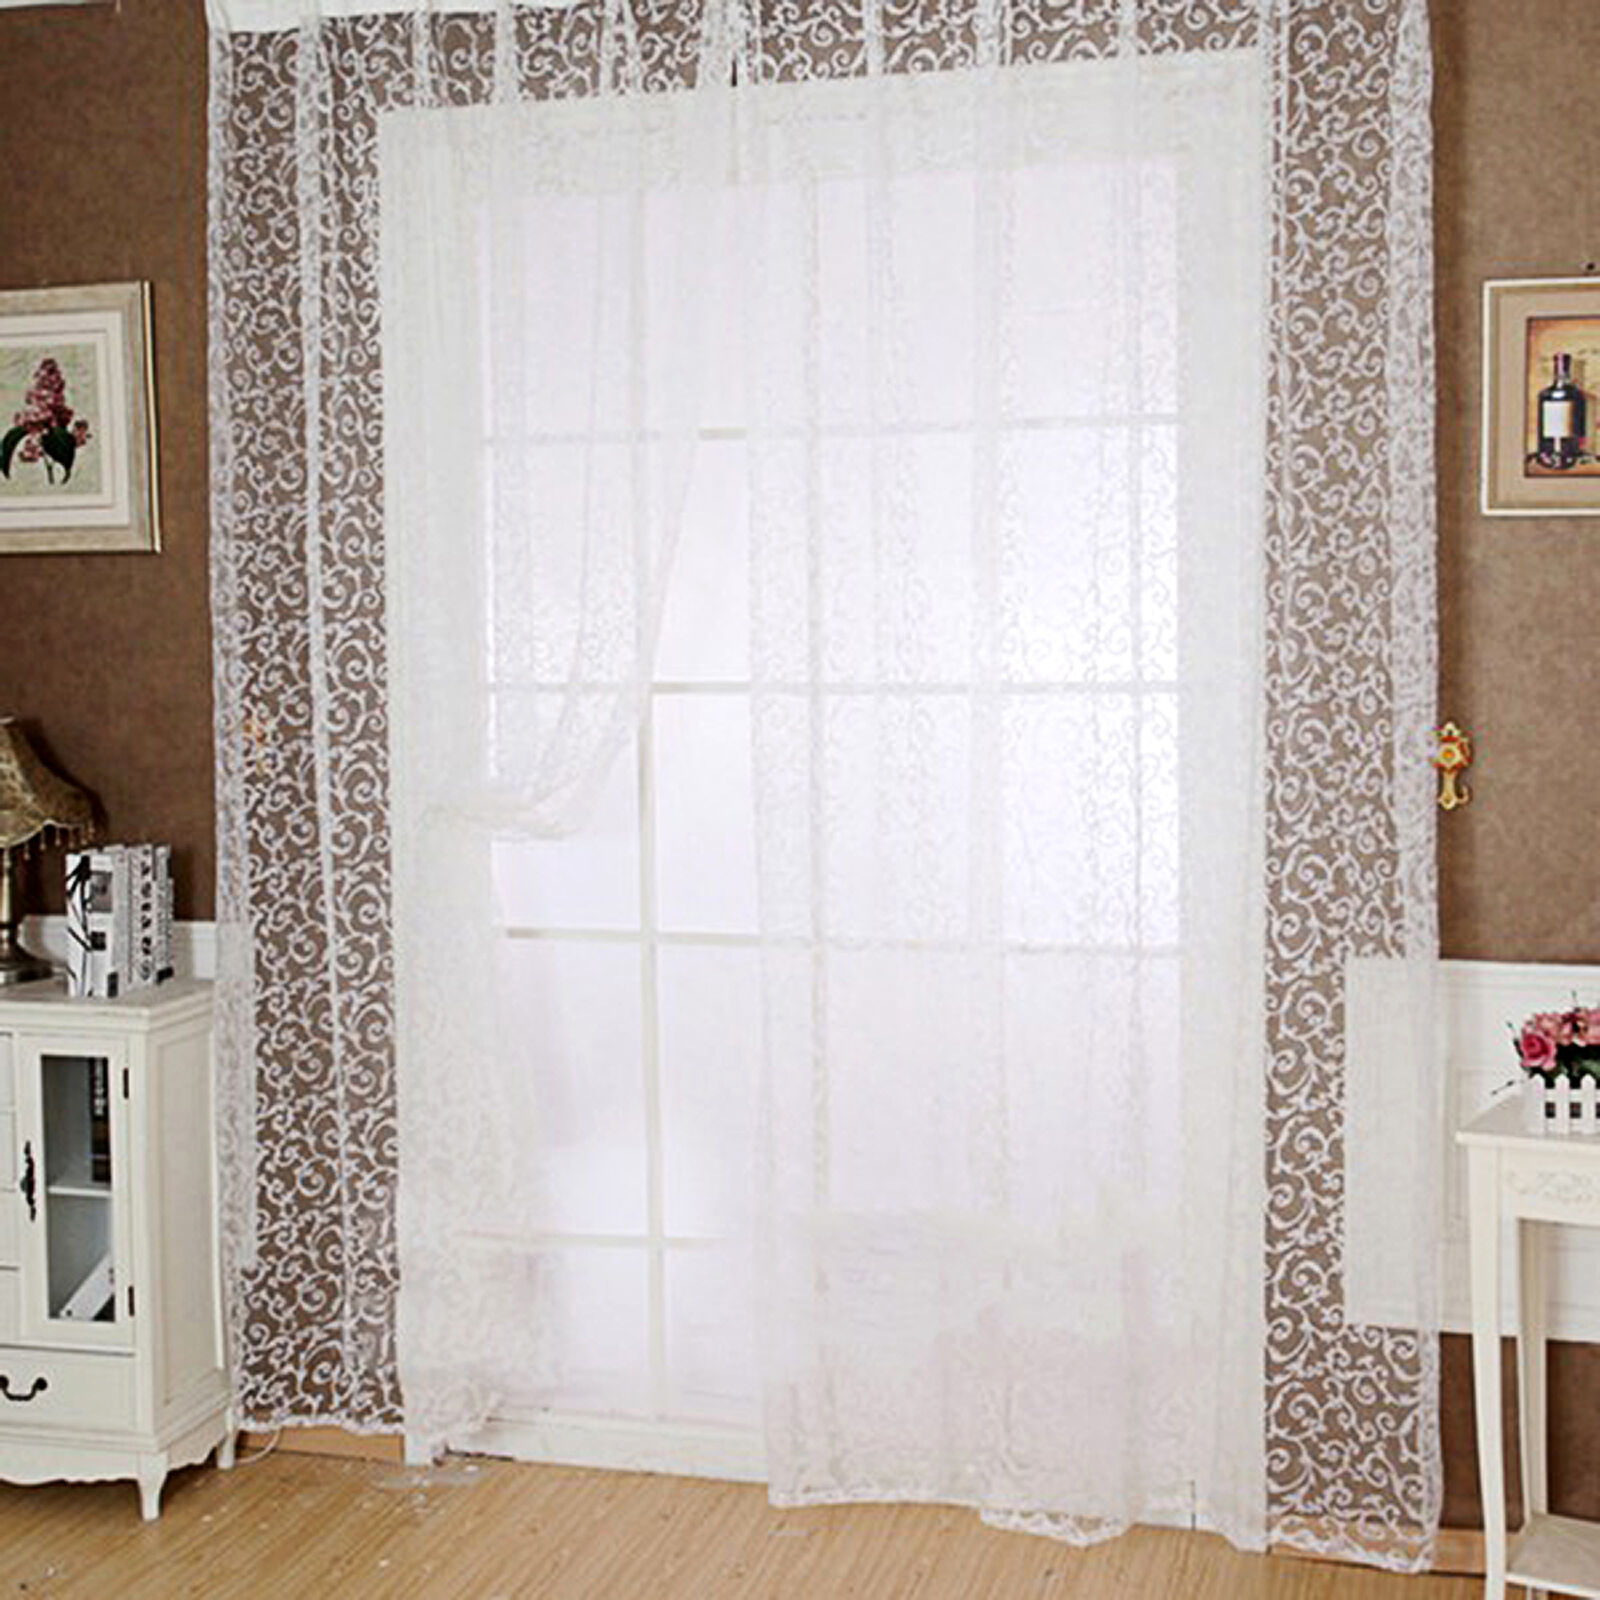 Modern Window Curtain With Flower Design: Modern Floral Tulle Voile Door Window Curtains Drape Panel